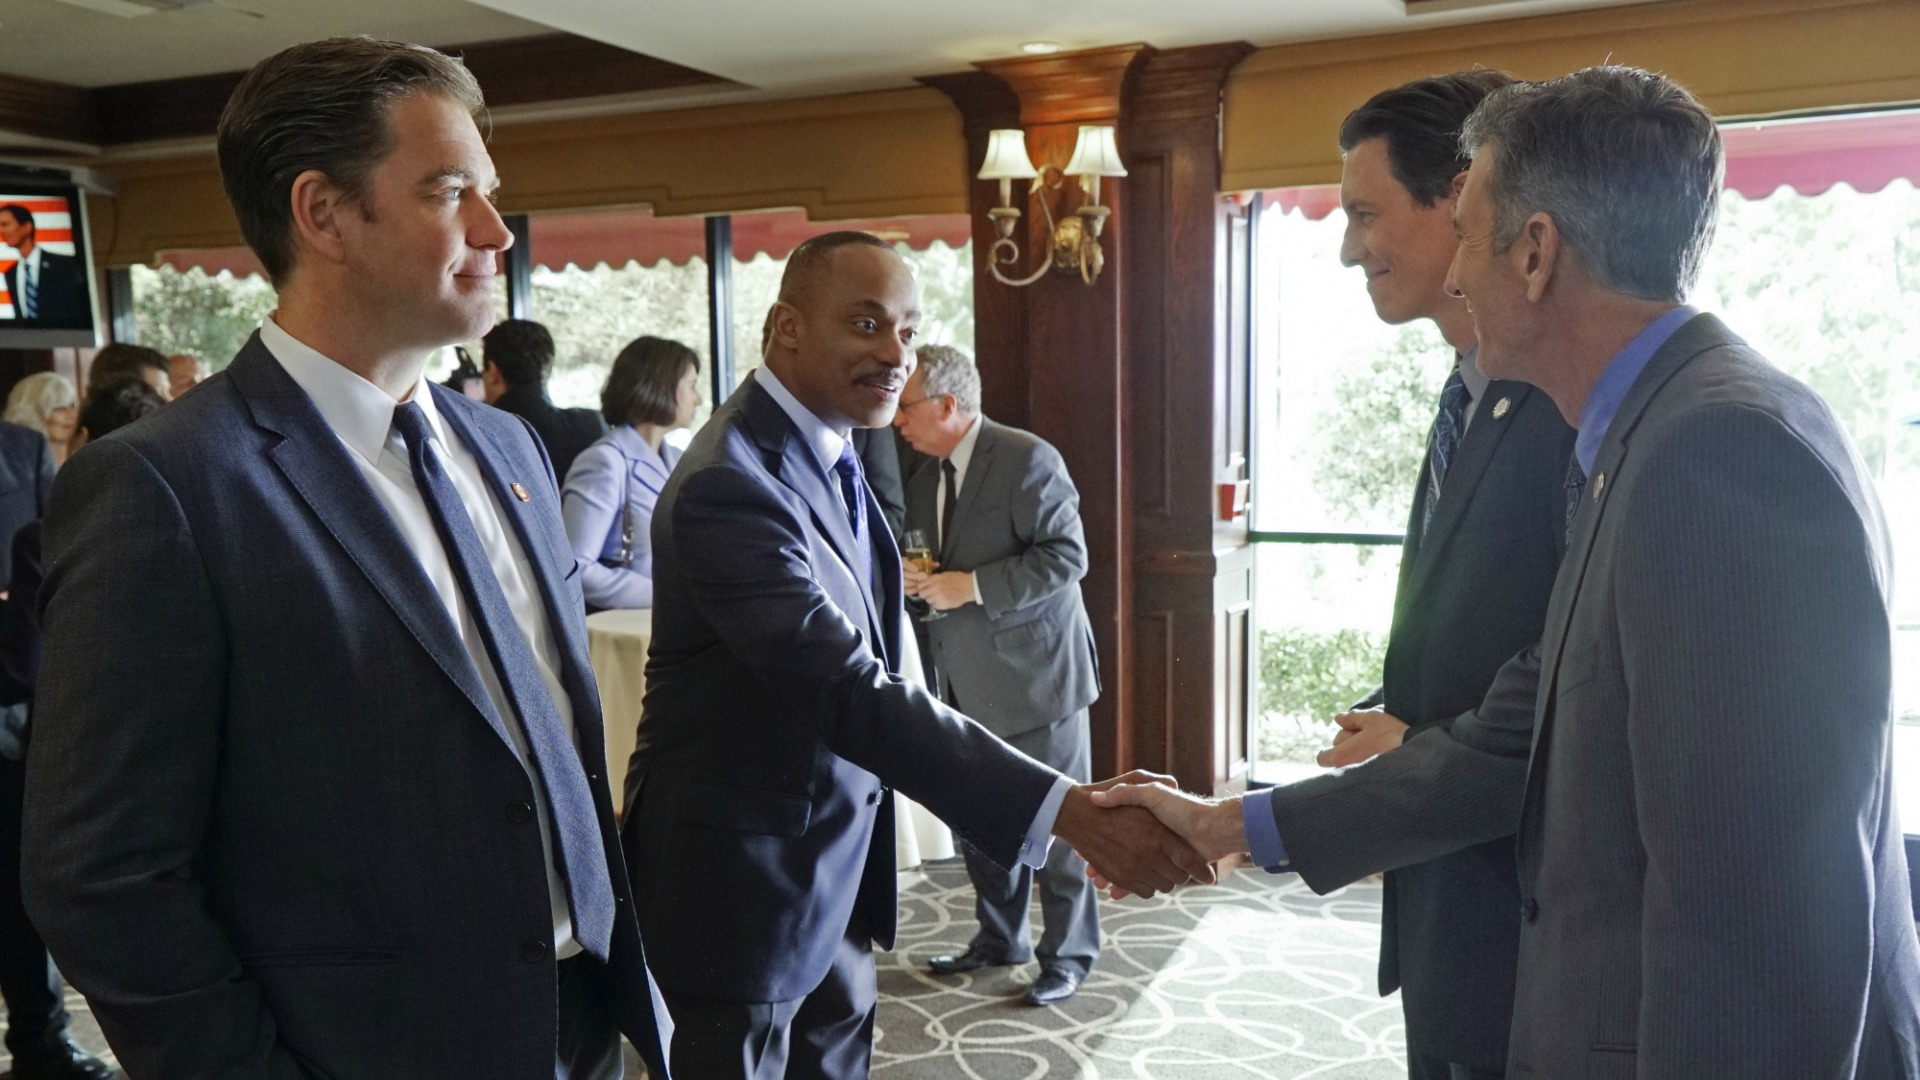 Vance and DiNozzo shake hands with U.S. senators.